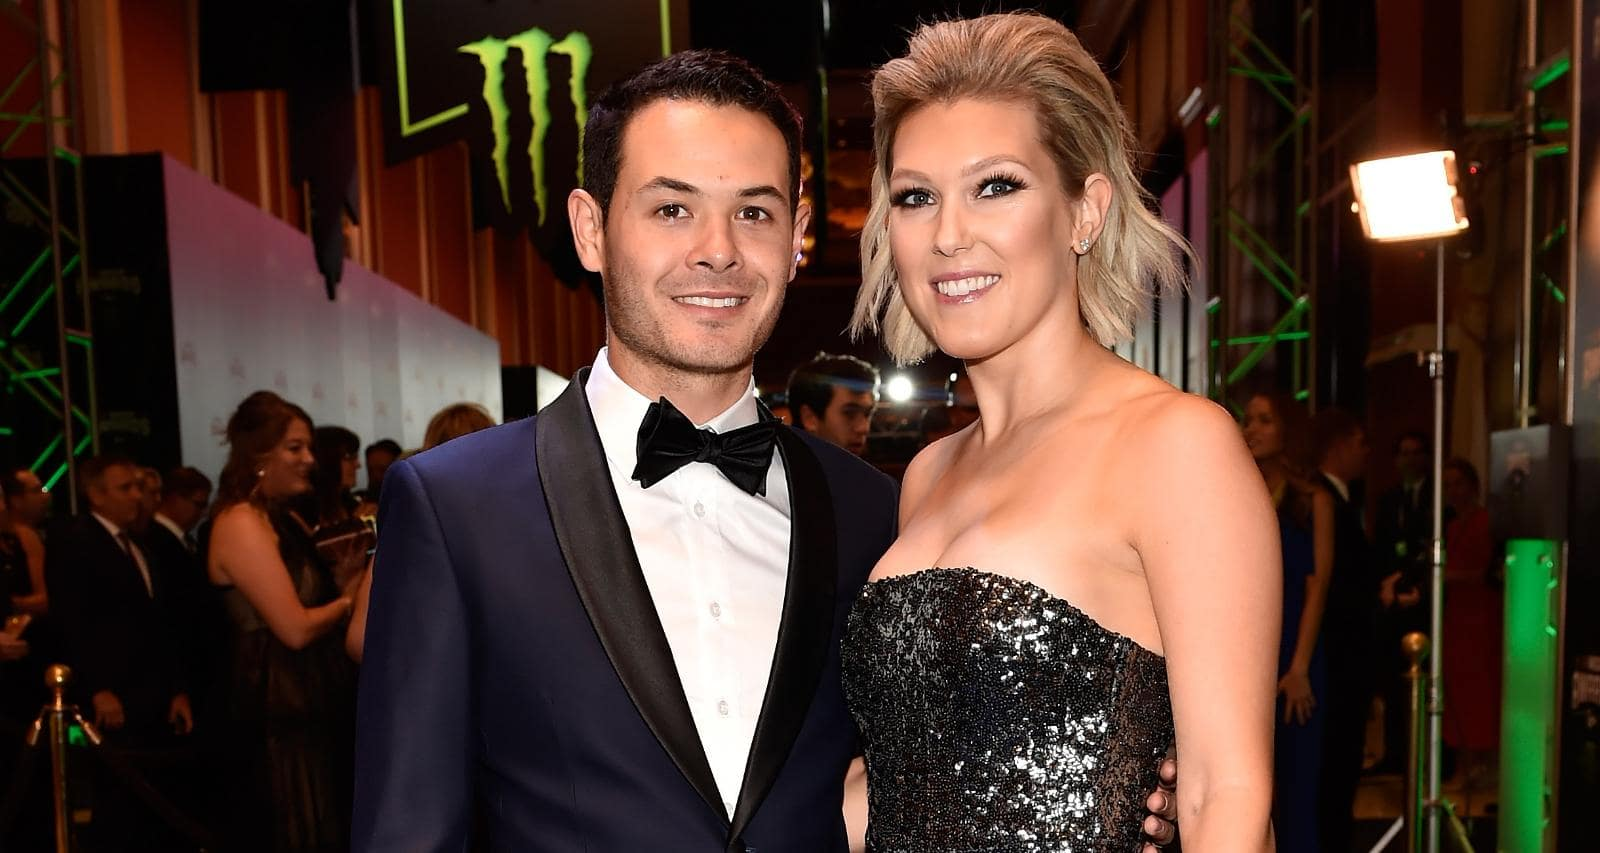 Katelyn Sweet Wiki, Age, Family, Brothers, Kids, Education, Equestrian and Facts About Kyle Larson's Wife and Brad Sweet's Sister